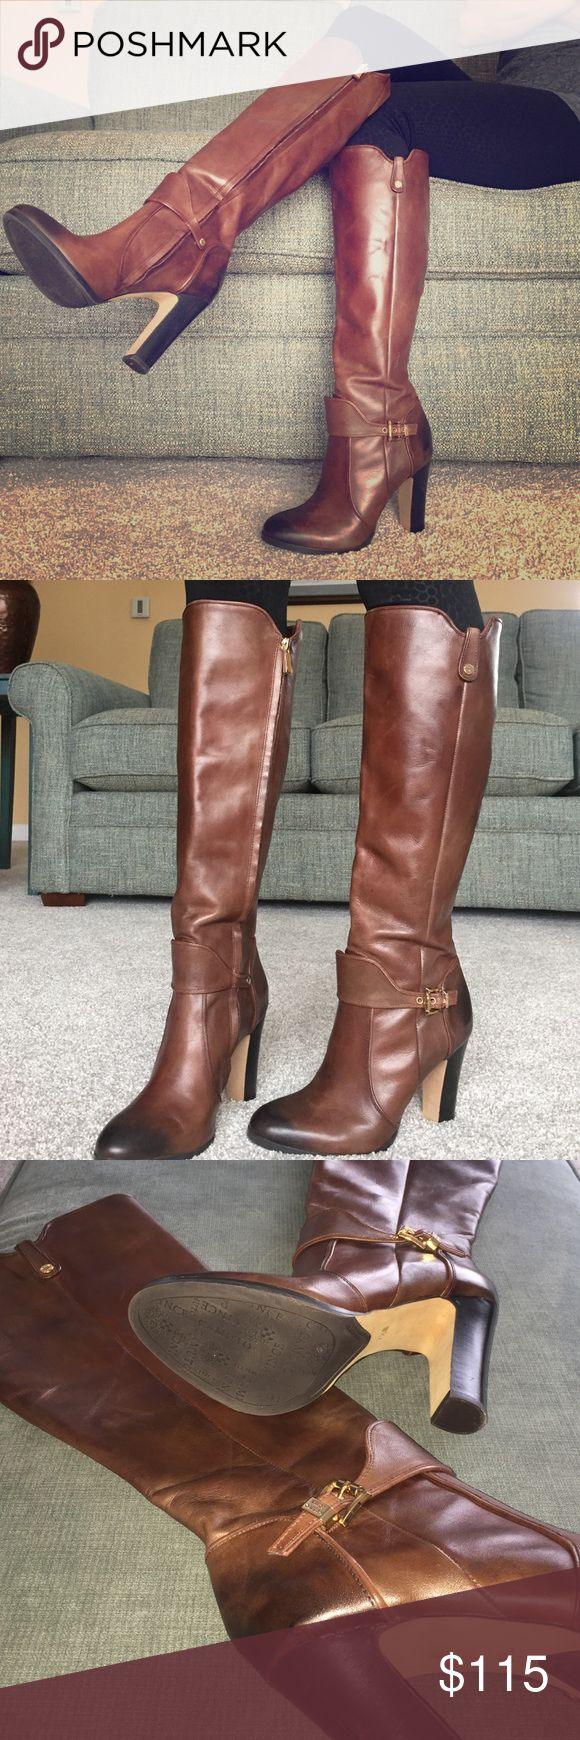 "Vince Camuto ""Cassia"" Women's Brown Dress Boots Worn only once! Beautiful brown dress boots perfect for dressing up a casual outfit or paired with a sweater dress for the office. Chic 4"" heel with pointed toe. Rubber sole and genuine leather. Gold buckles and inside zipper. Vince Camuto Shoes Heeled Boots"